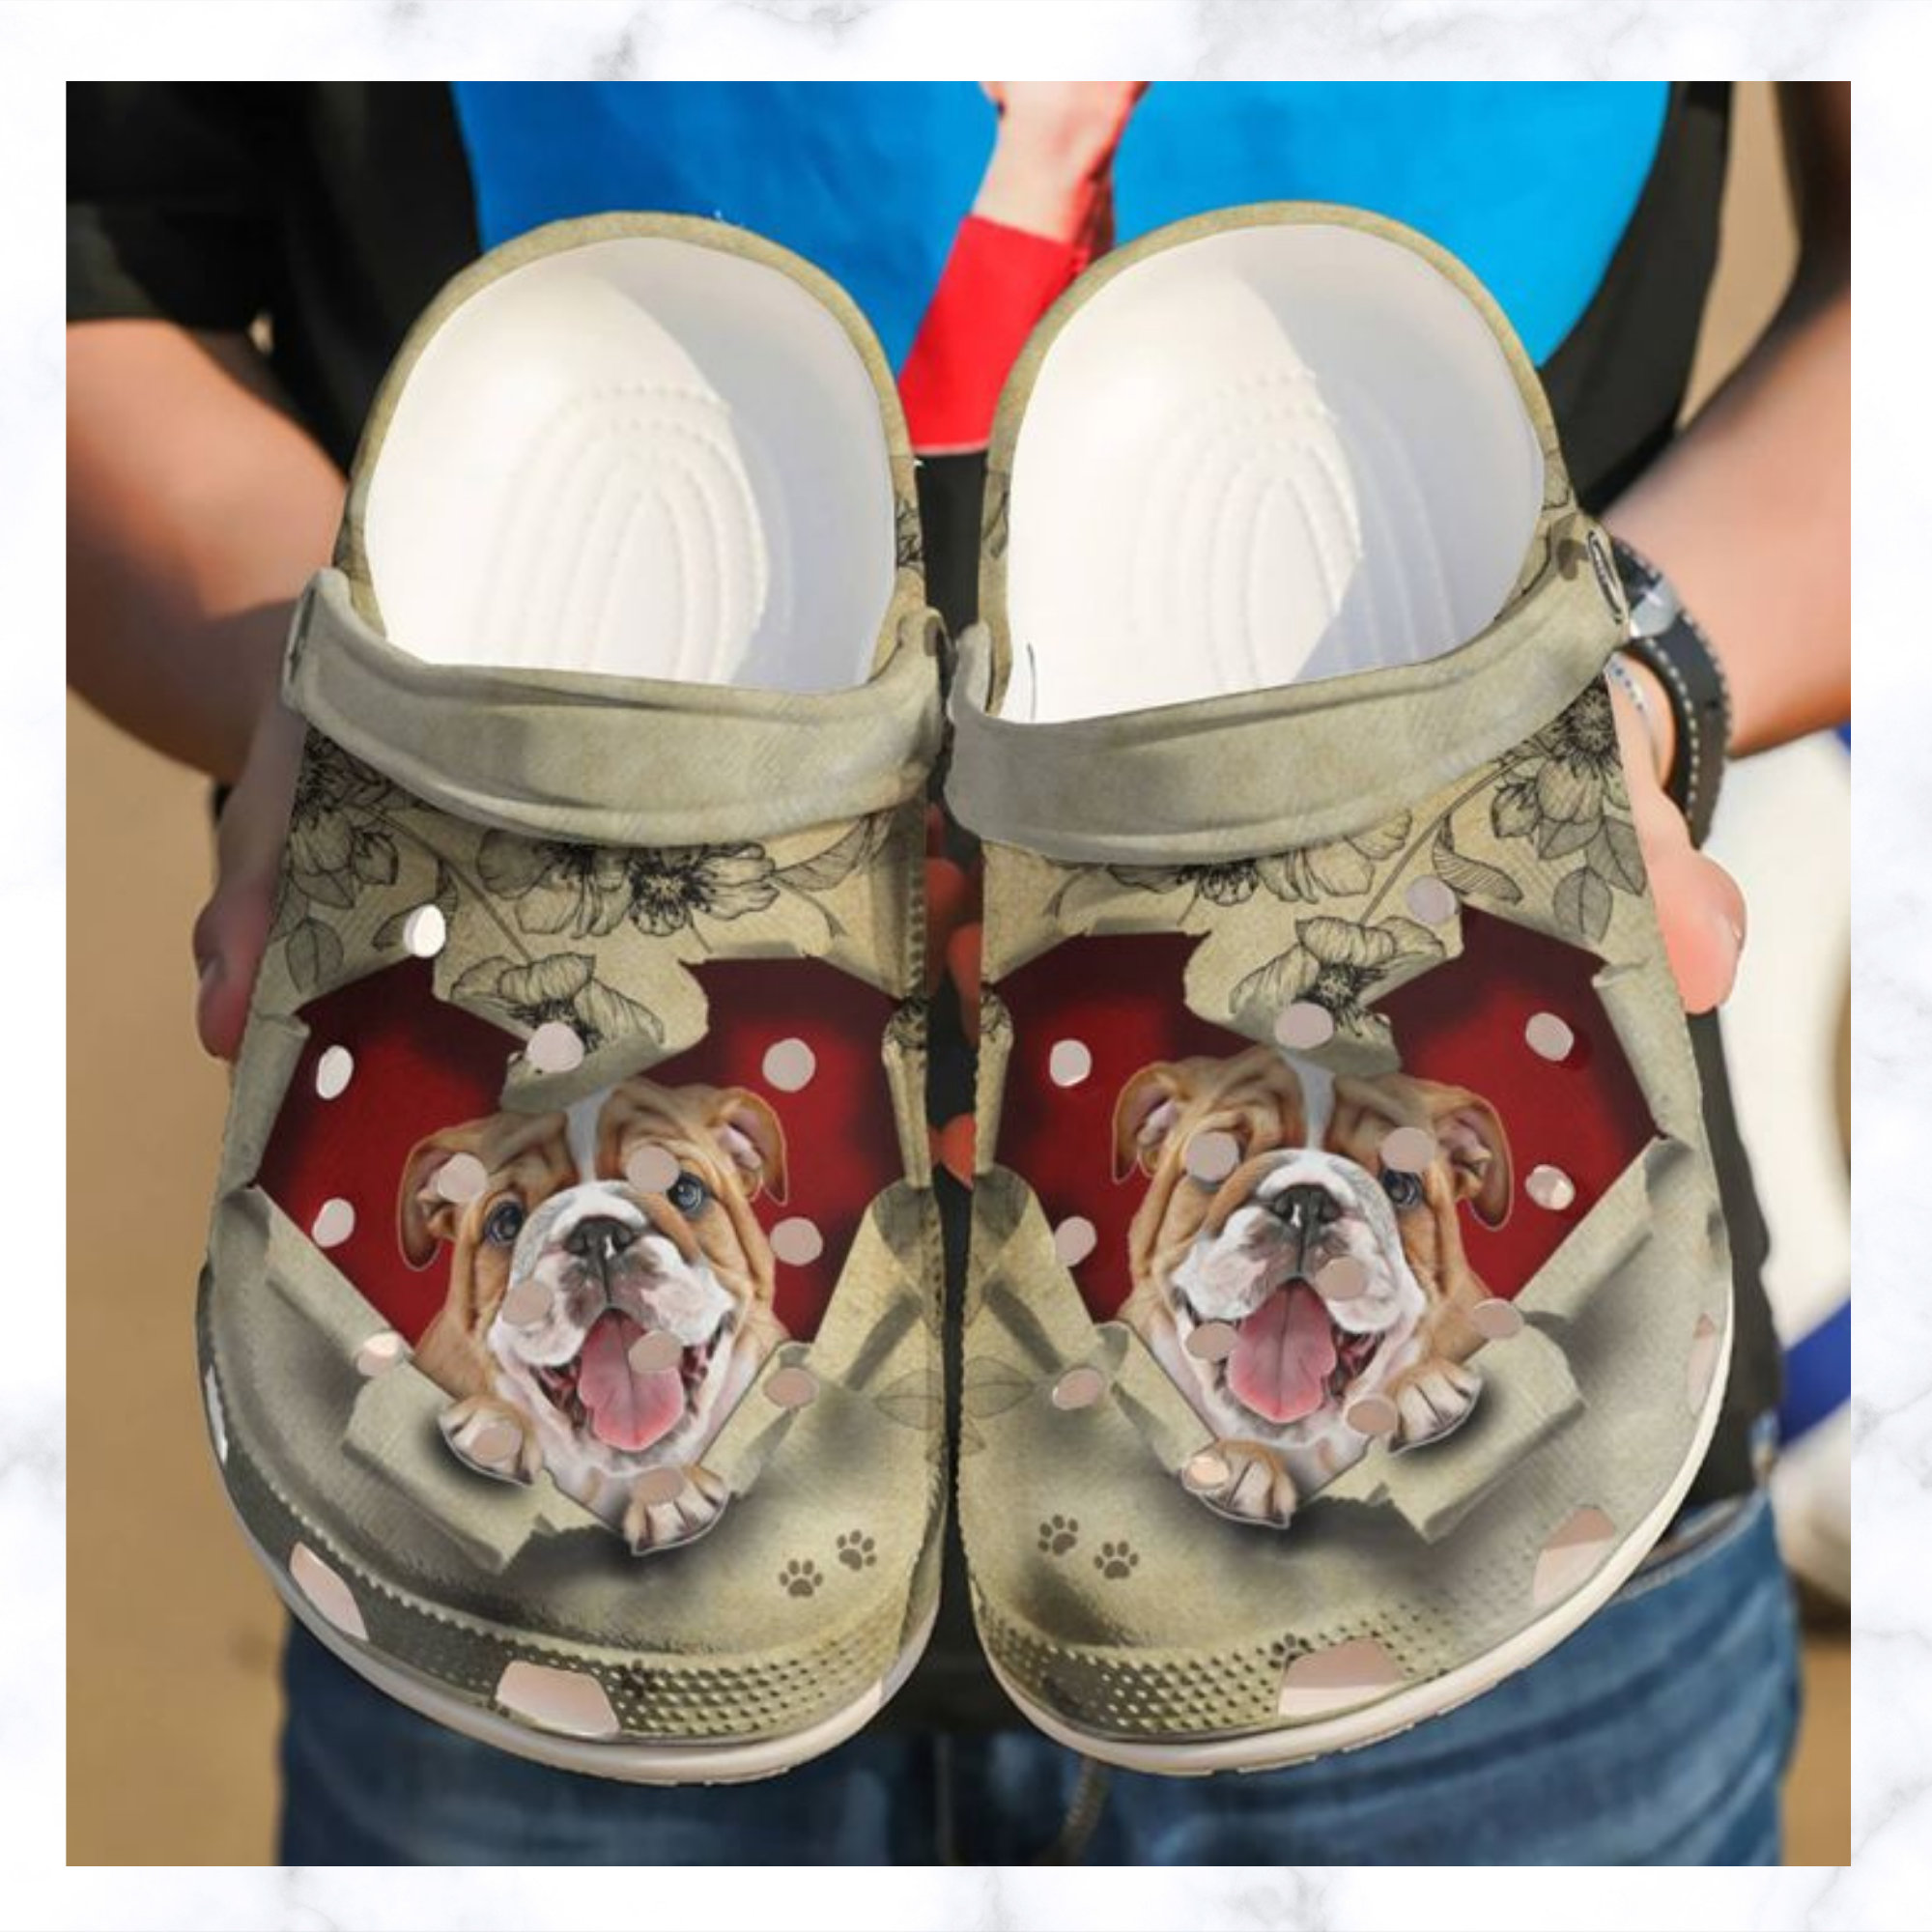 Bulldog They Steal My Heart Crocs Clog Shoes